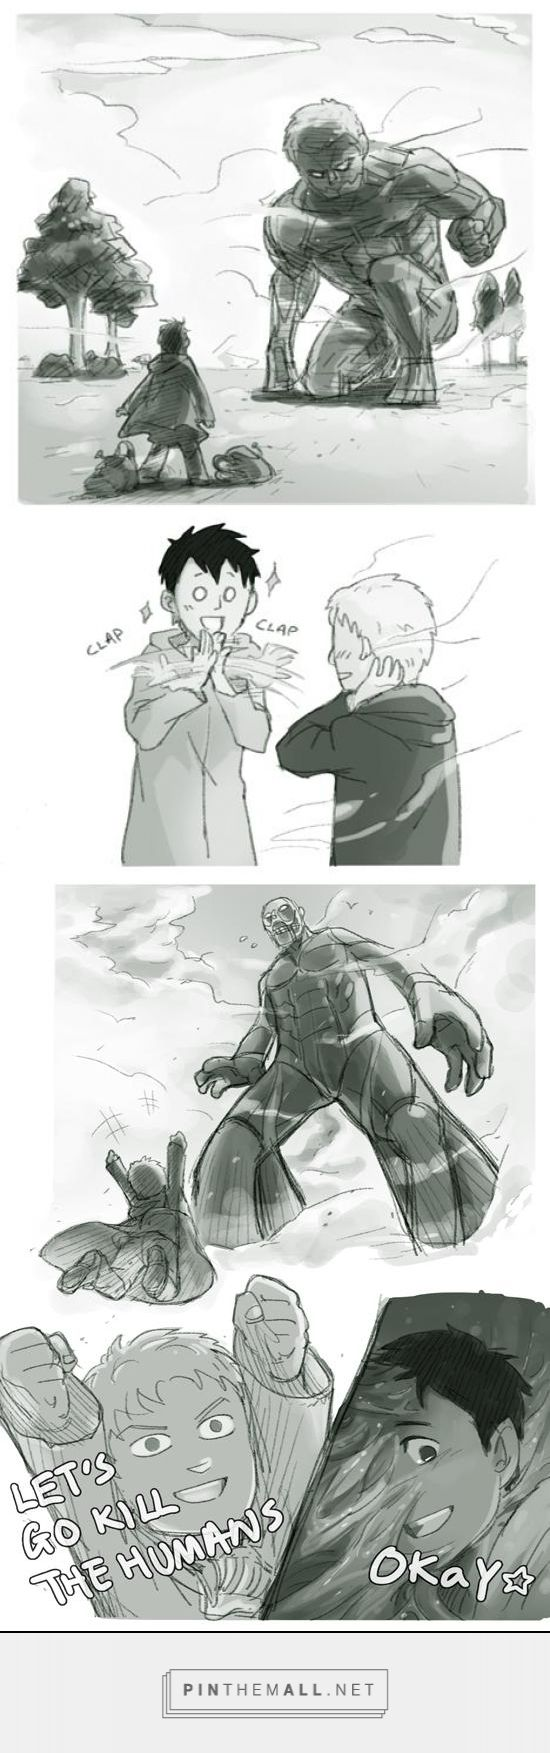 cuileggs: I could've stopped at panel 3 but no Source: http://cuileggs.tumblr.com/post/59023363486/i-couldve-stopped-at-panel-3-but-no